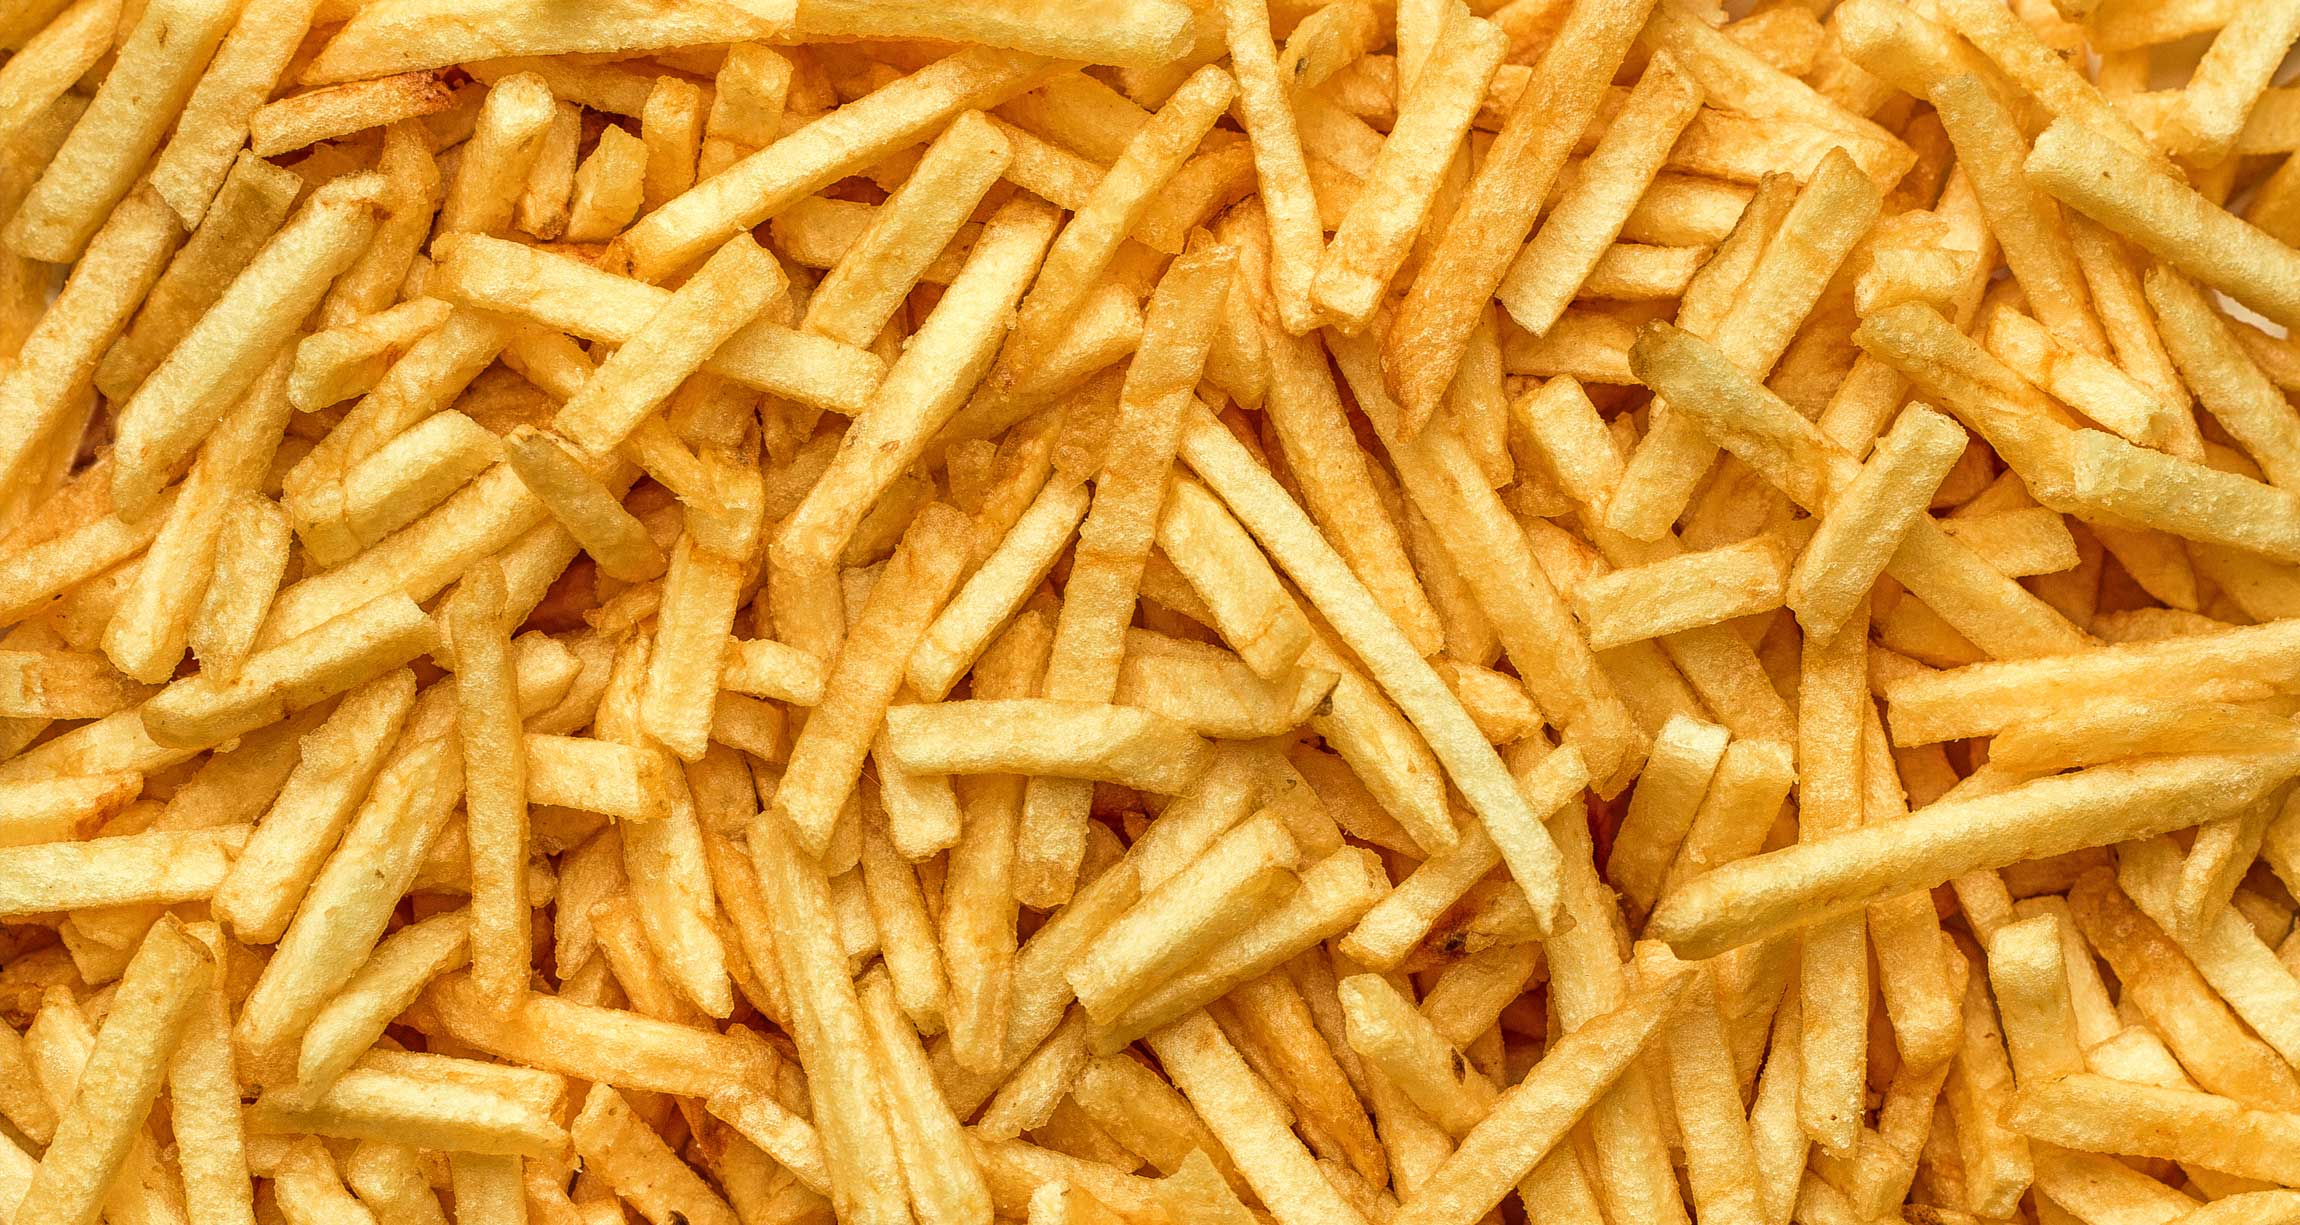 close-up image of french fries